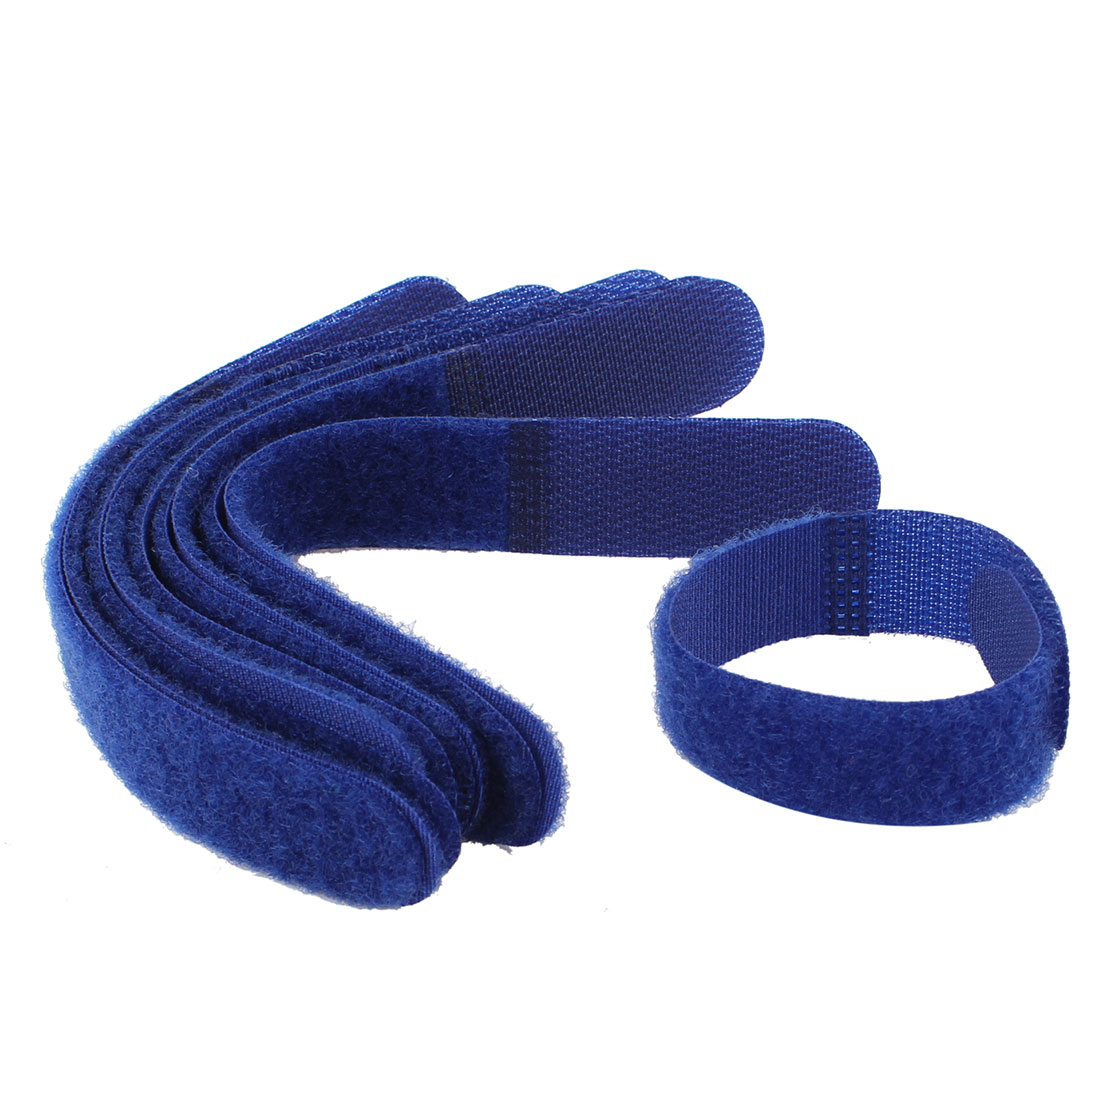 10 Pcs Detachable Fastener Hook Loop Tie Strap Cable Organizer Blue